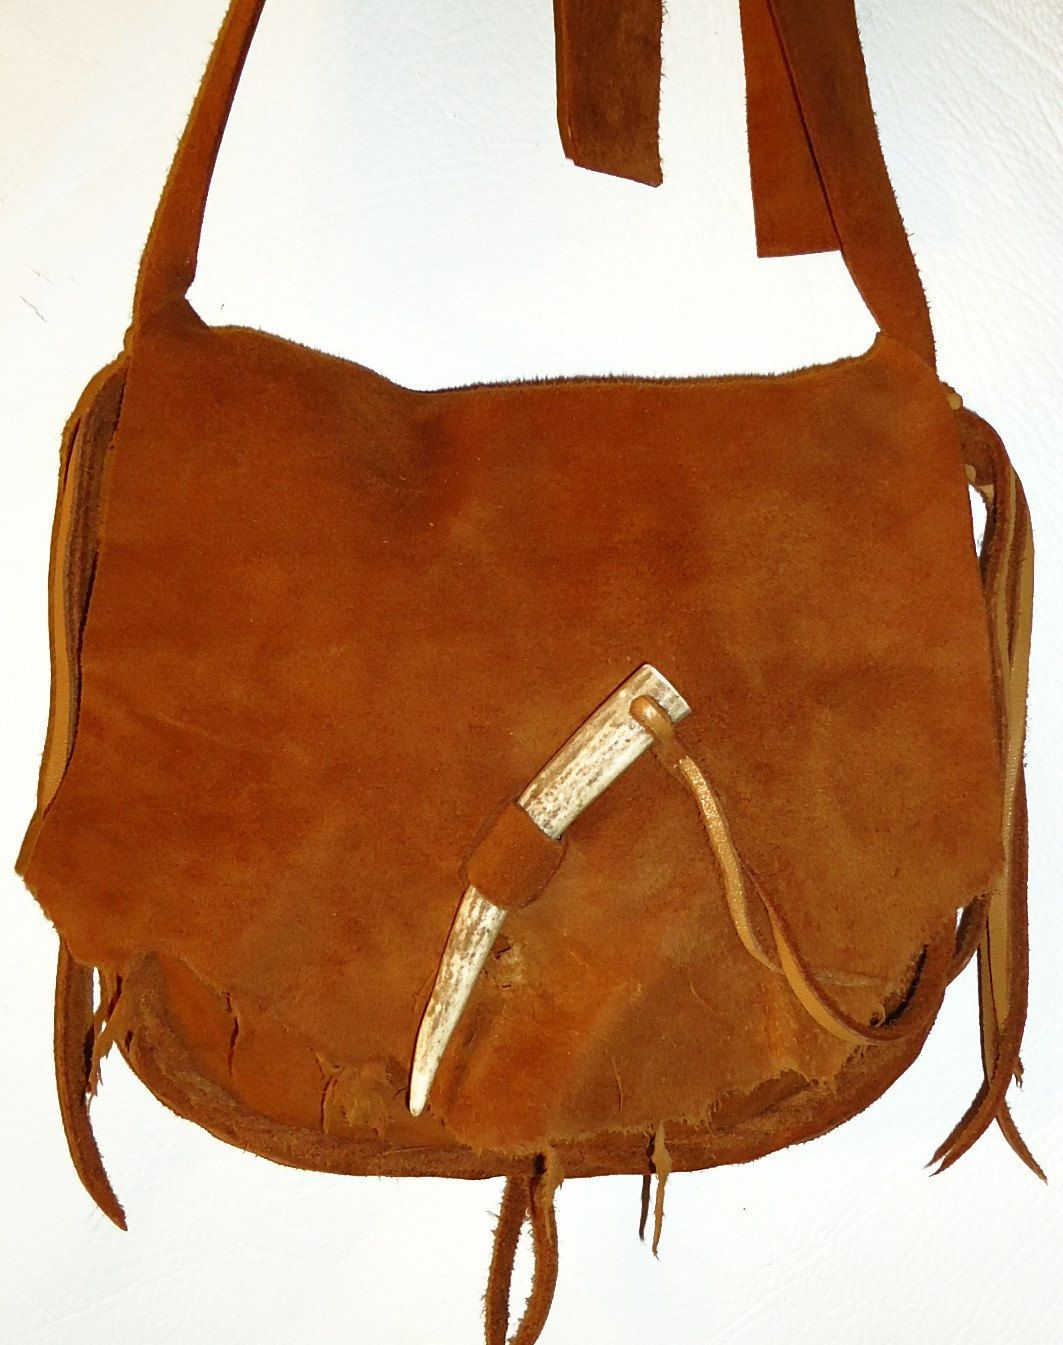 Possibles Bag Purse Cross Body Mountain Man Rendezvous Black Powder Shoot Hunting 2 Compartments Uni